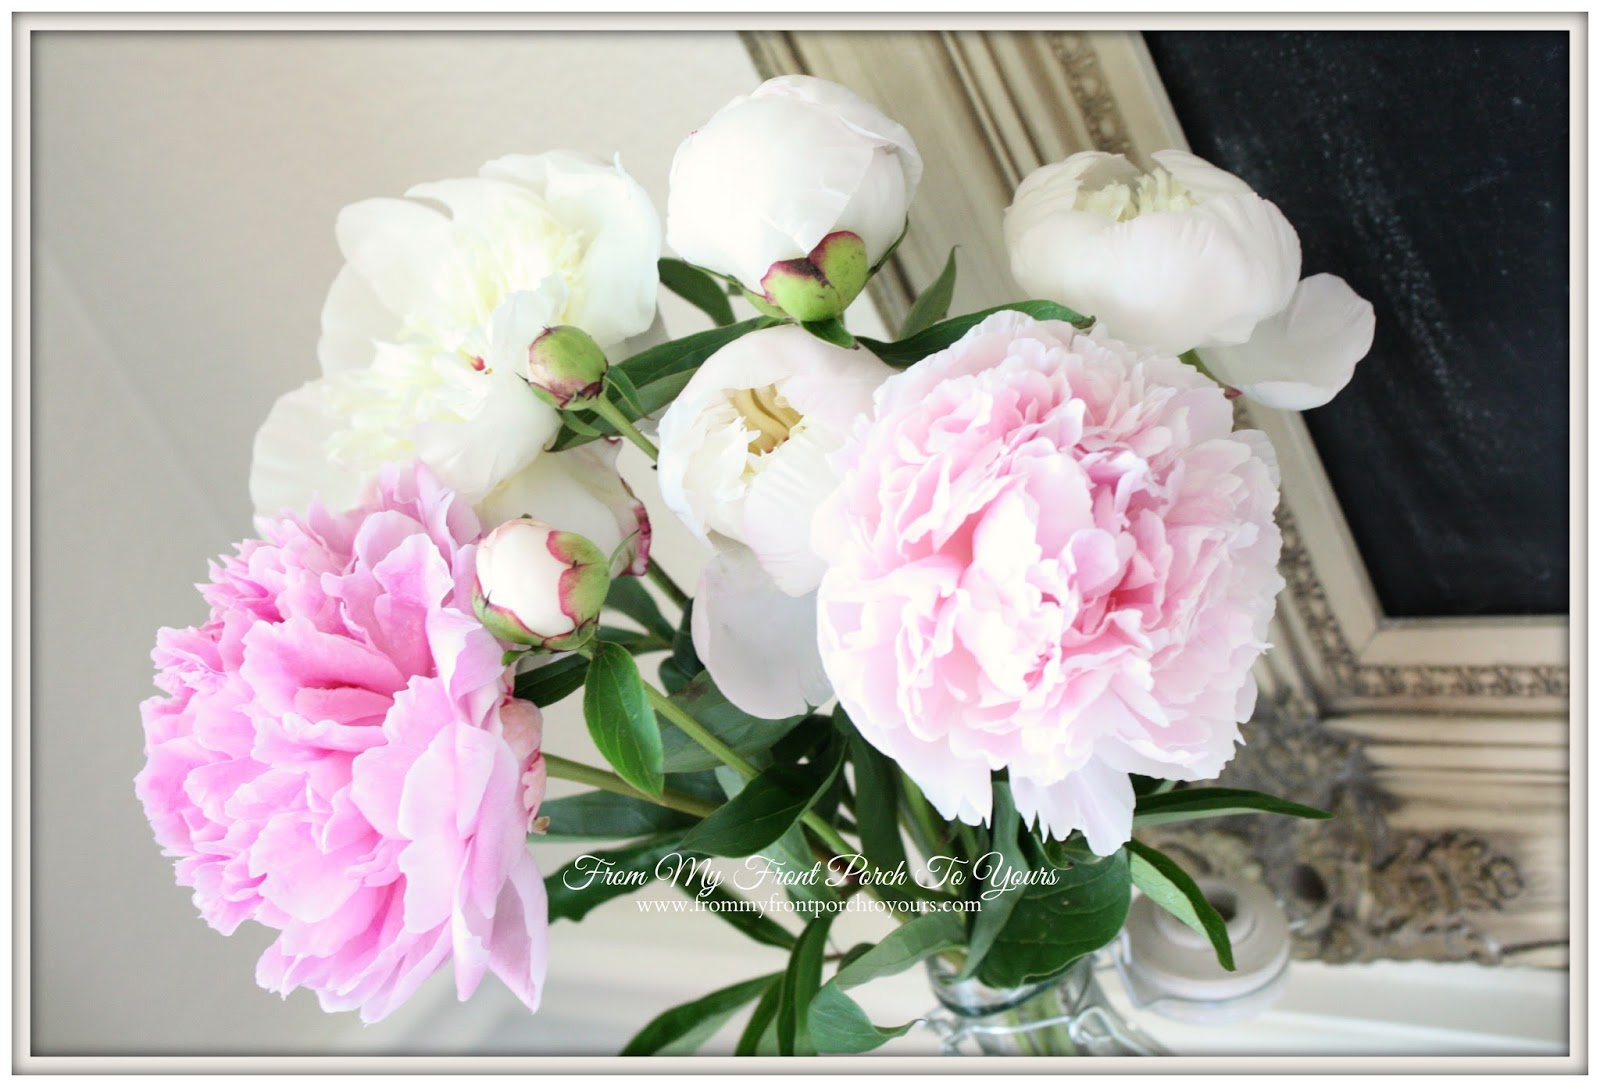 From My Front Porch To Yours- Peonies